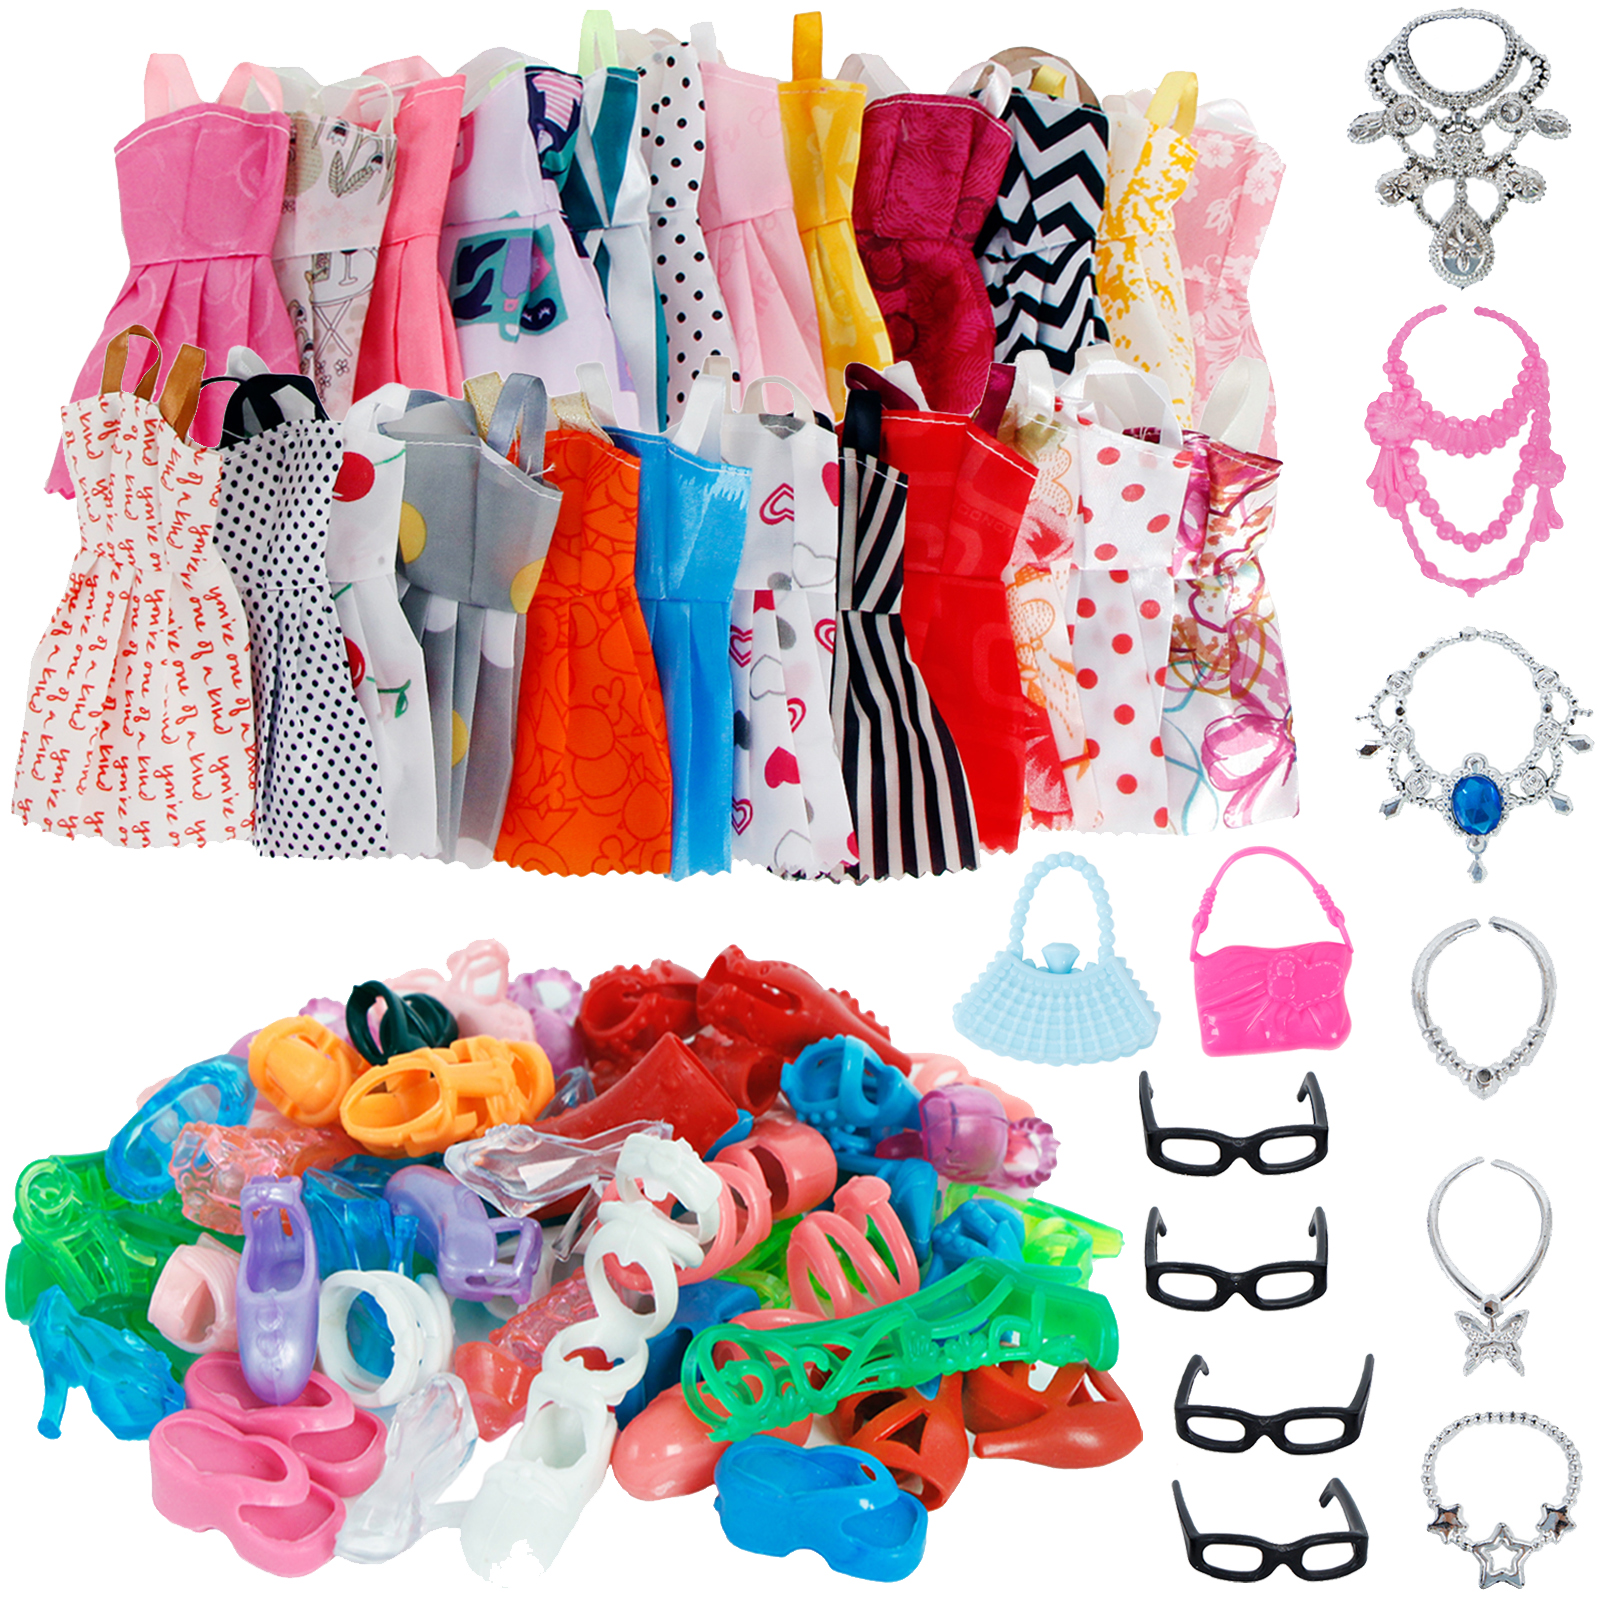 32 Item/Set Doll Accessories=10 Mix Fashion Cute Dress+ 4 Glasses+ 6 Necklaces+2 Handbag+ 10 Shoes Dress Clothes For Doll